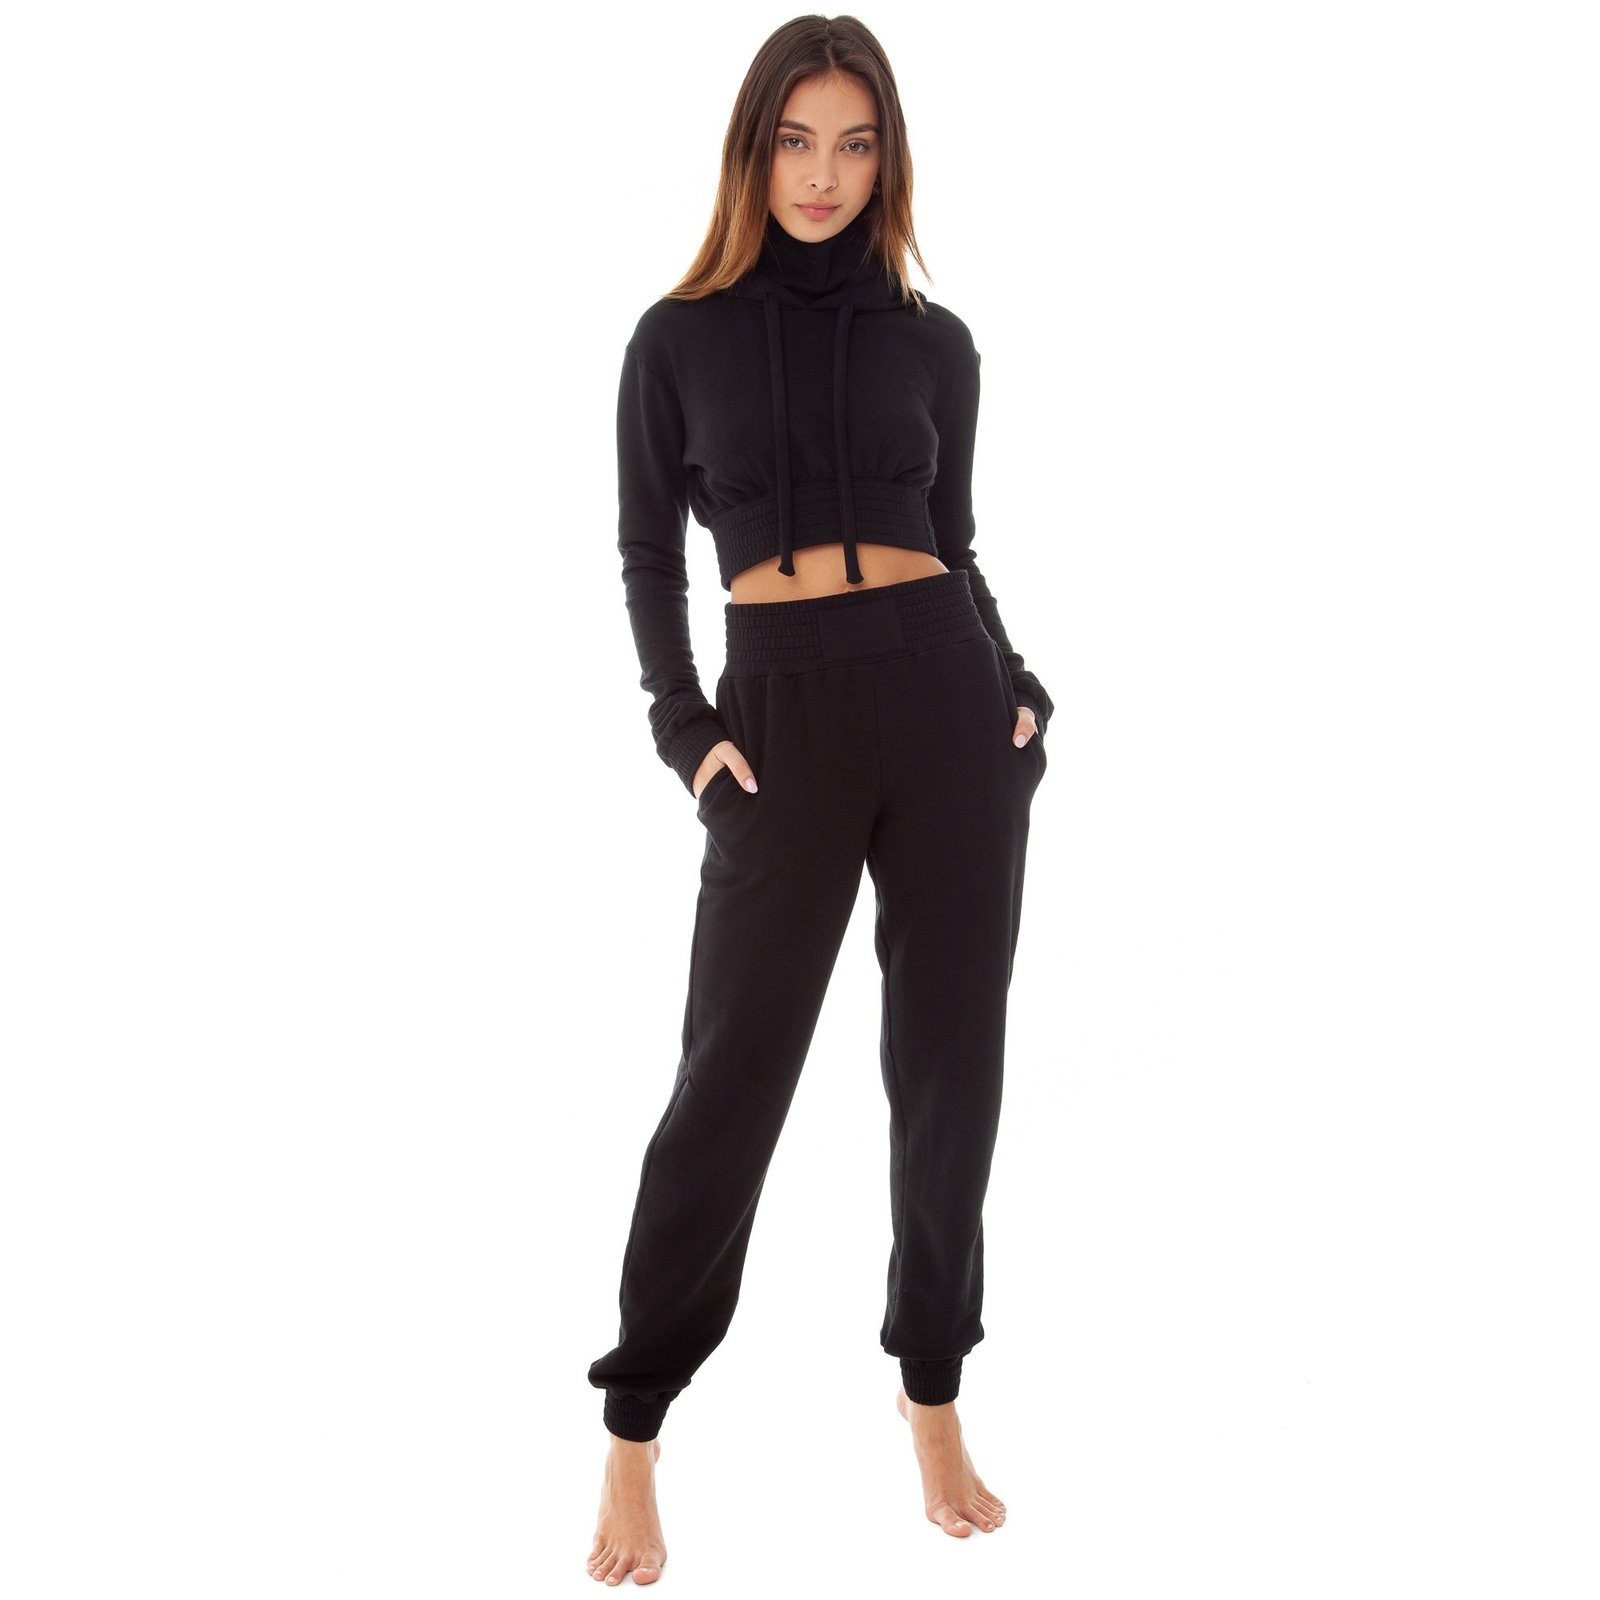 Southpaw Warm Up Pant by Are You Am I, available on areyouami.com for $180 Kendall Jenner Pants SIMILAR PRODUCT